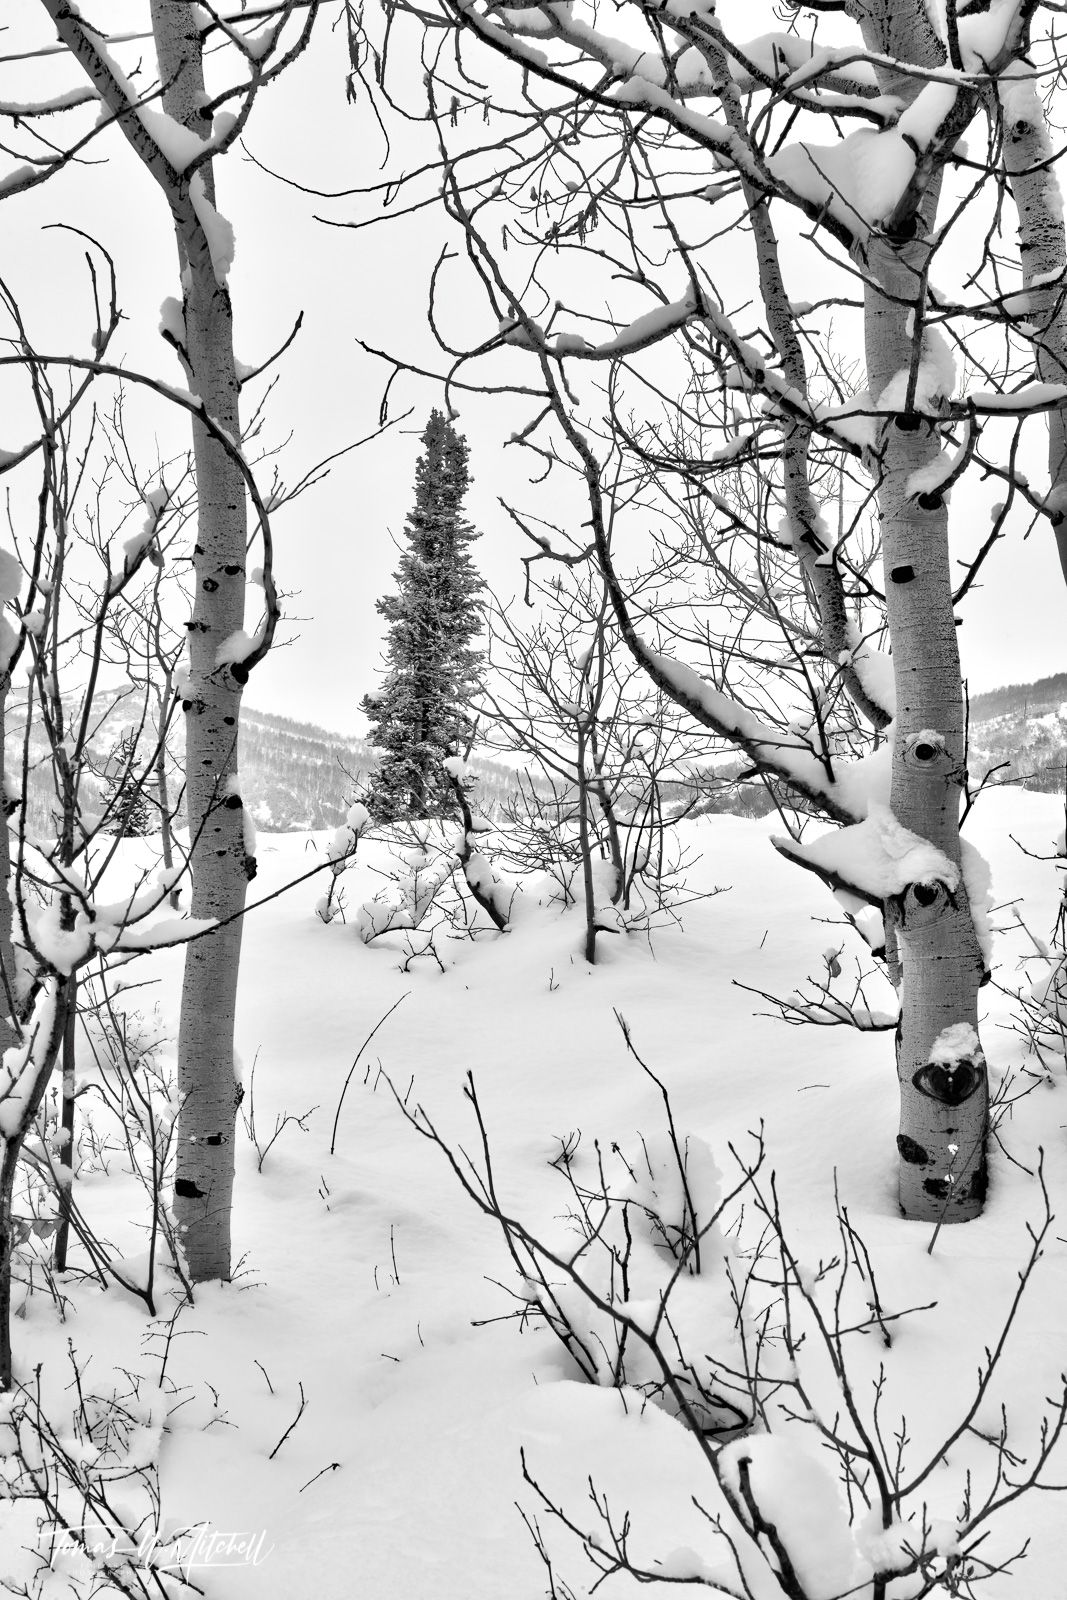 Limited Edition of 100 Museum Grade, Fine Art Prints. Winter is a season that must be embraced fully in all its cold, white...